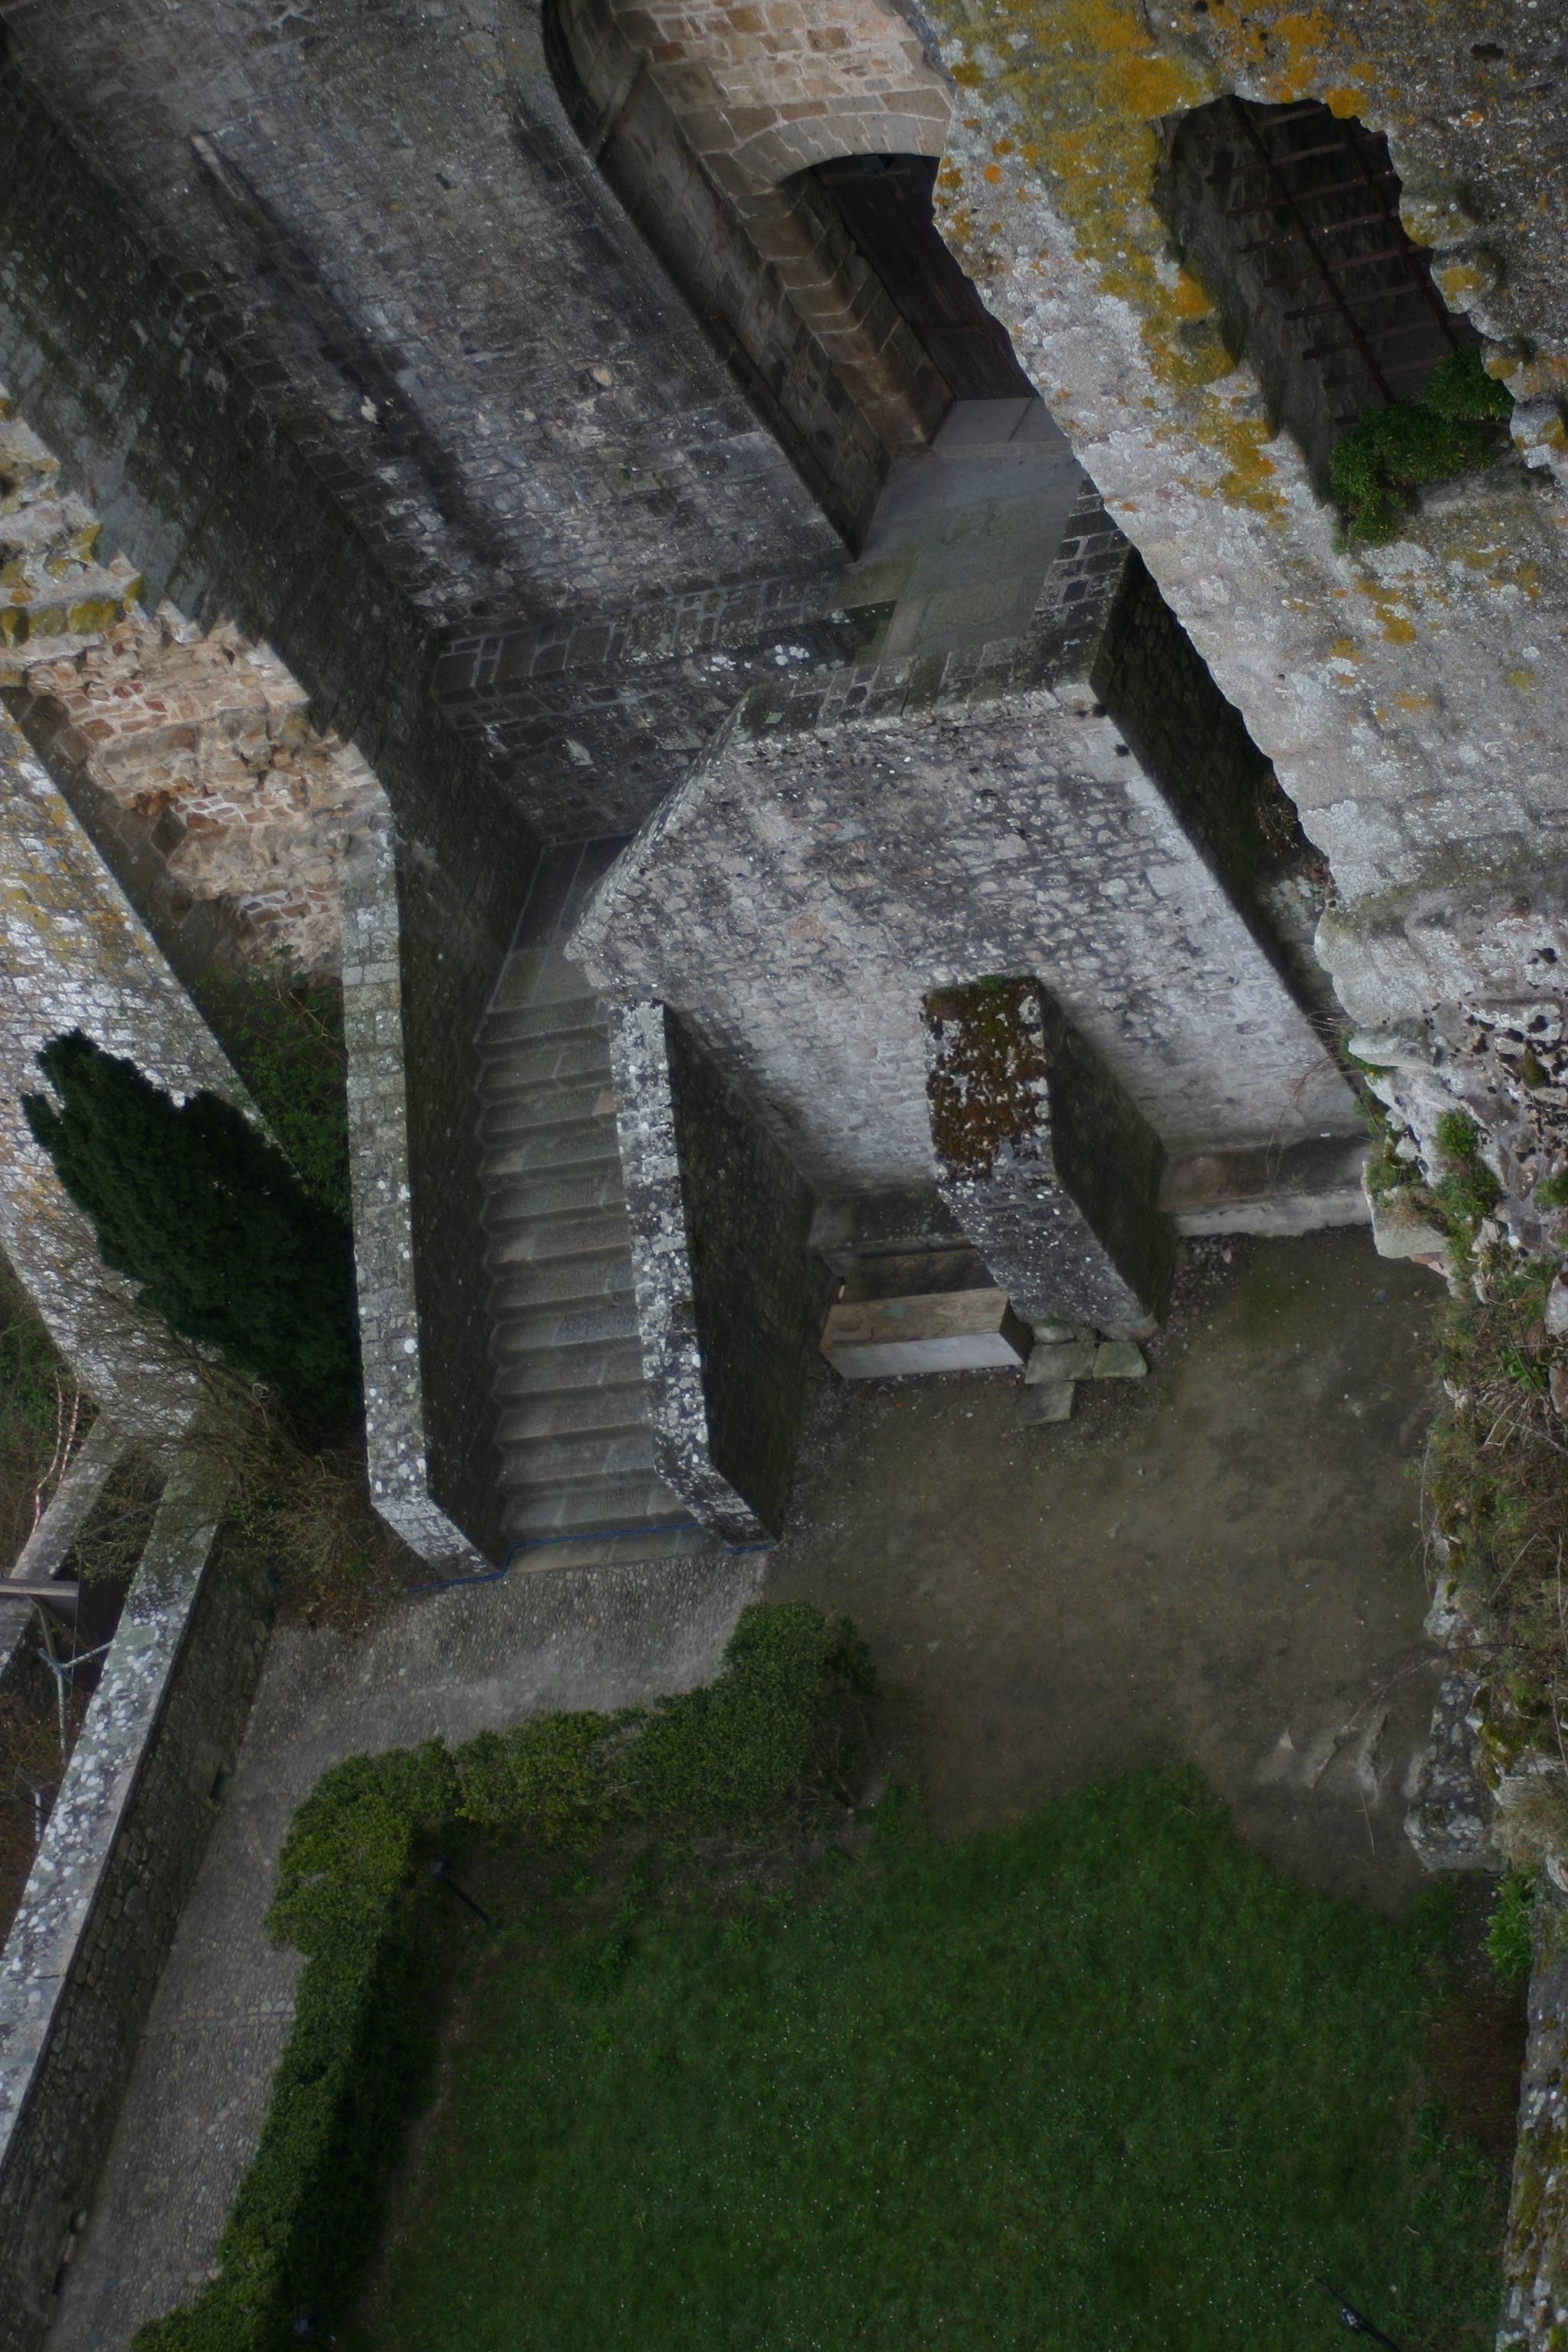 Looking Down on the Courtyard at Mont Saint-Michel.